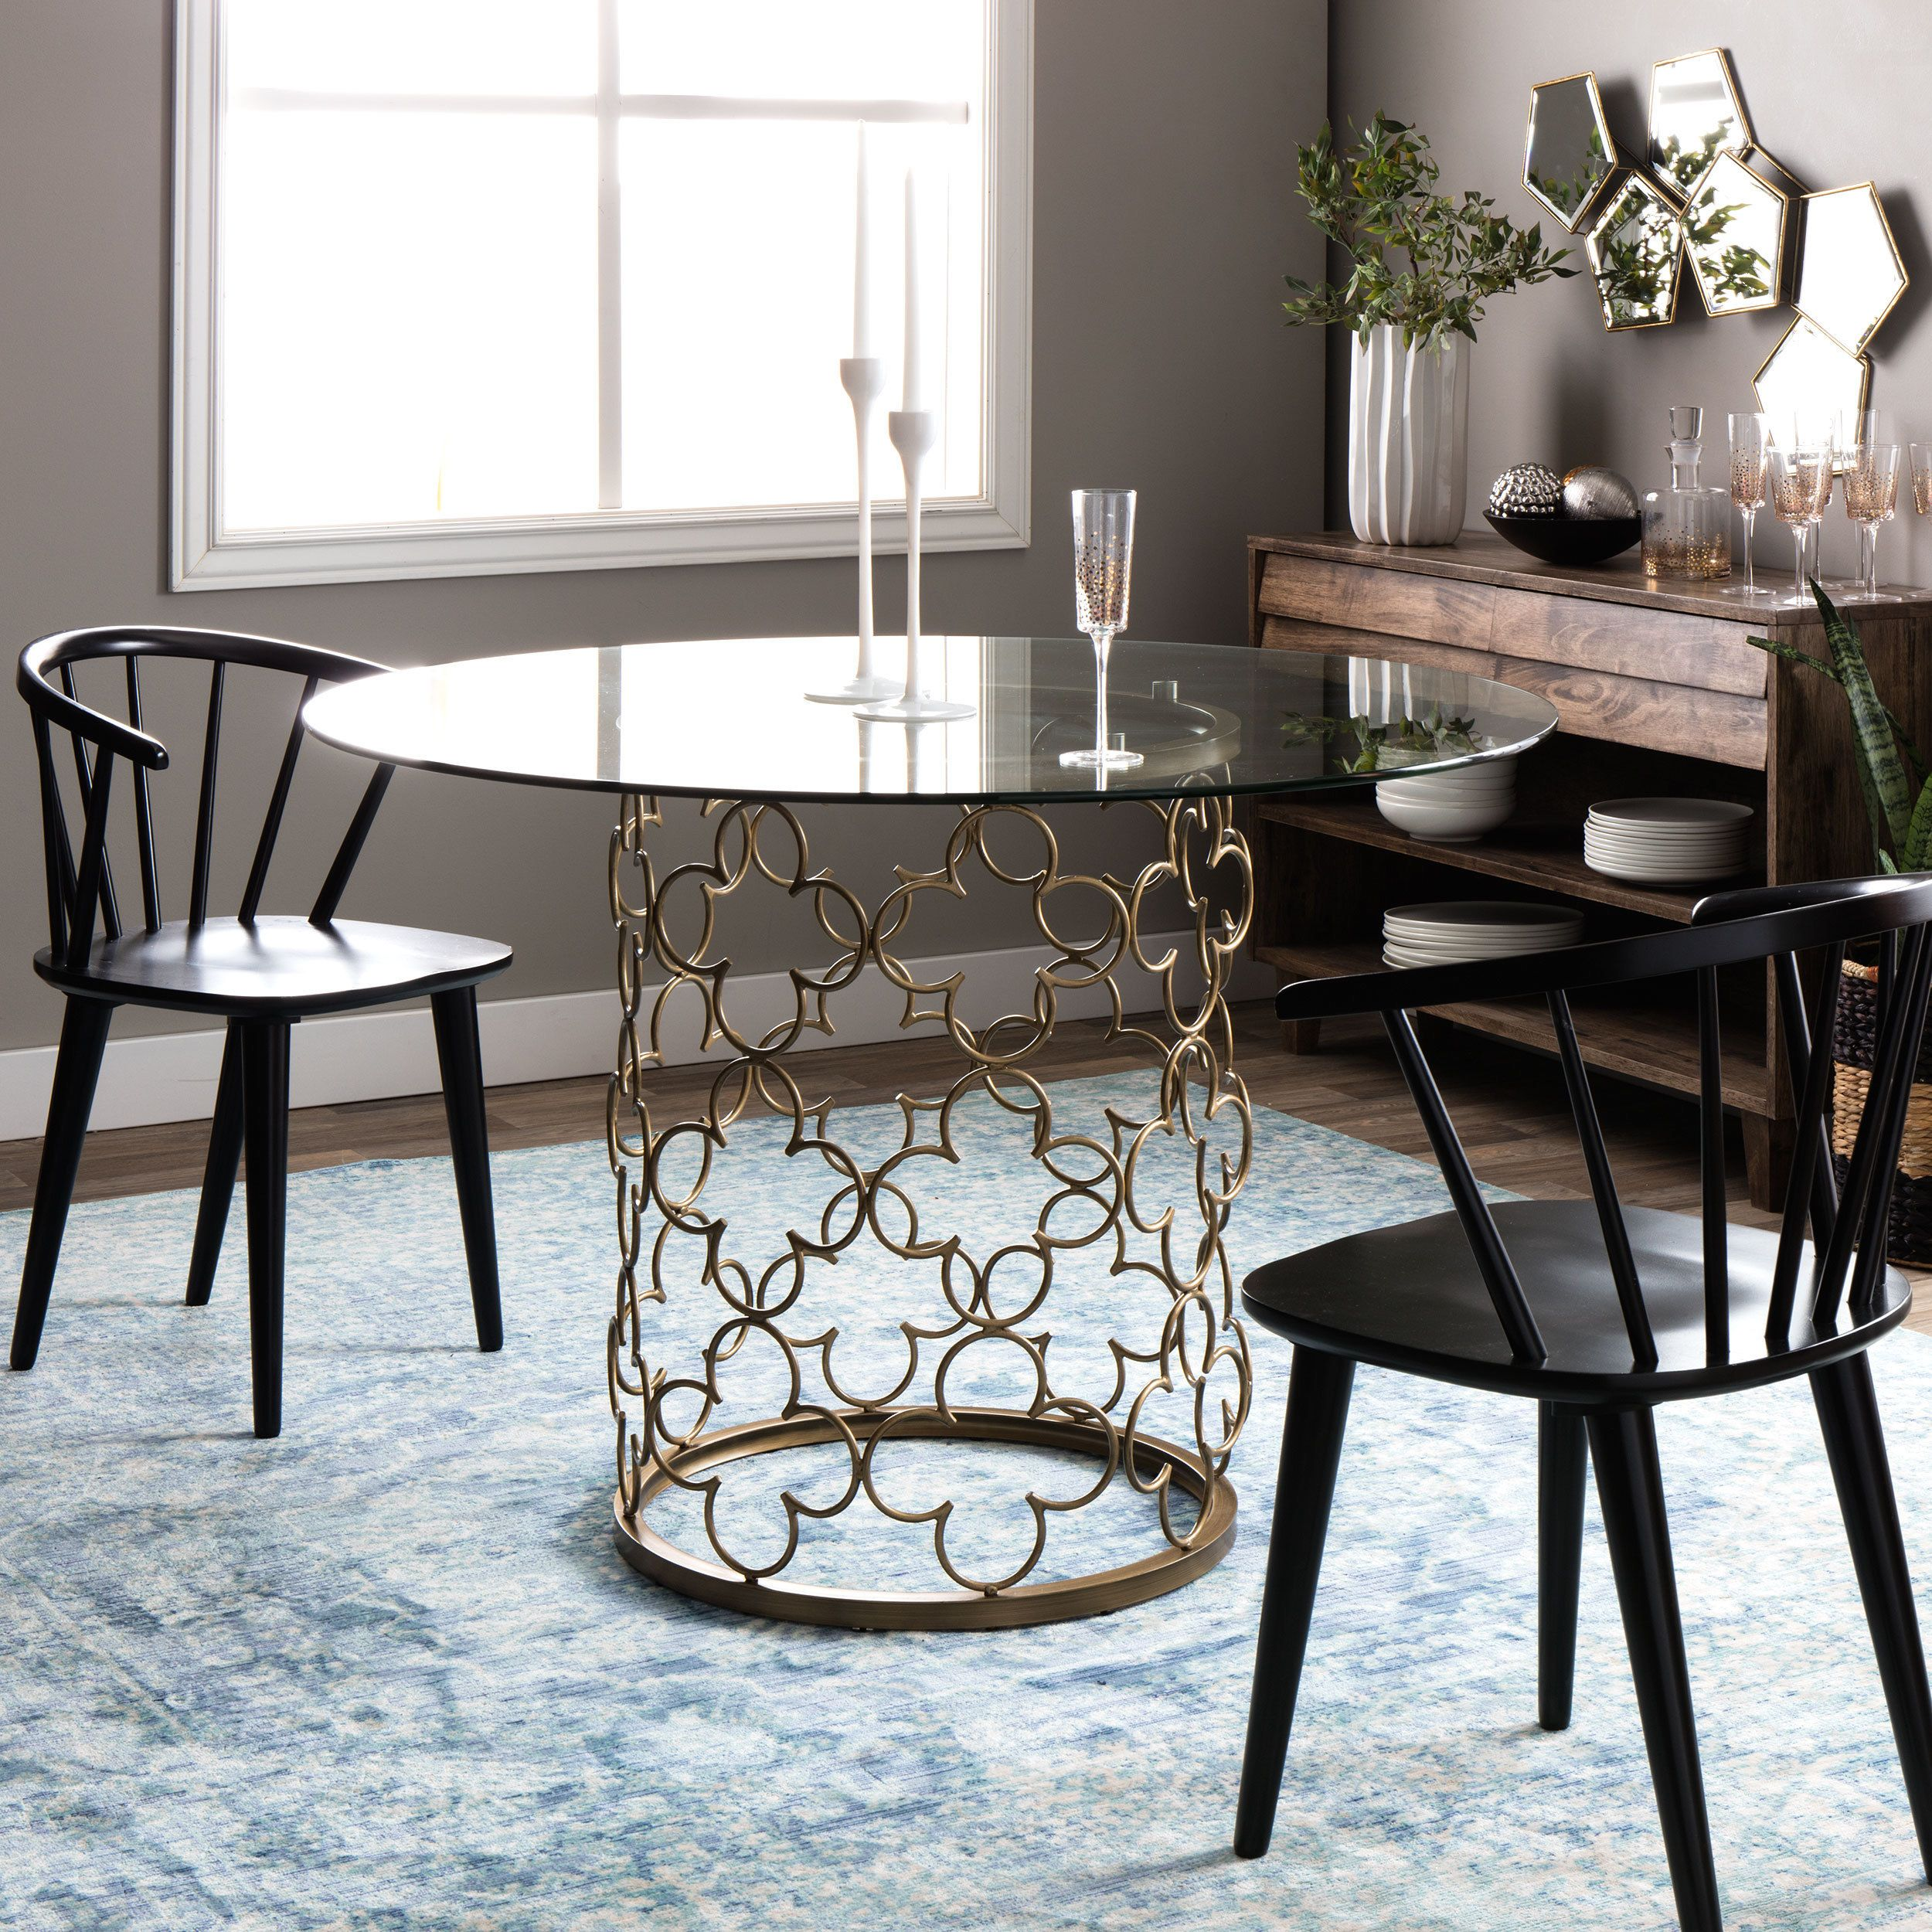 Enjoy The Classic Elegance Of This Beautiful Dining Table